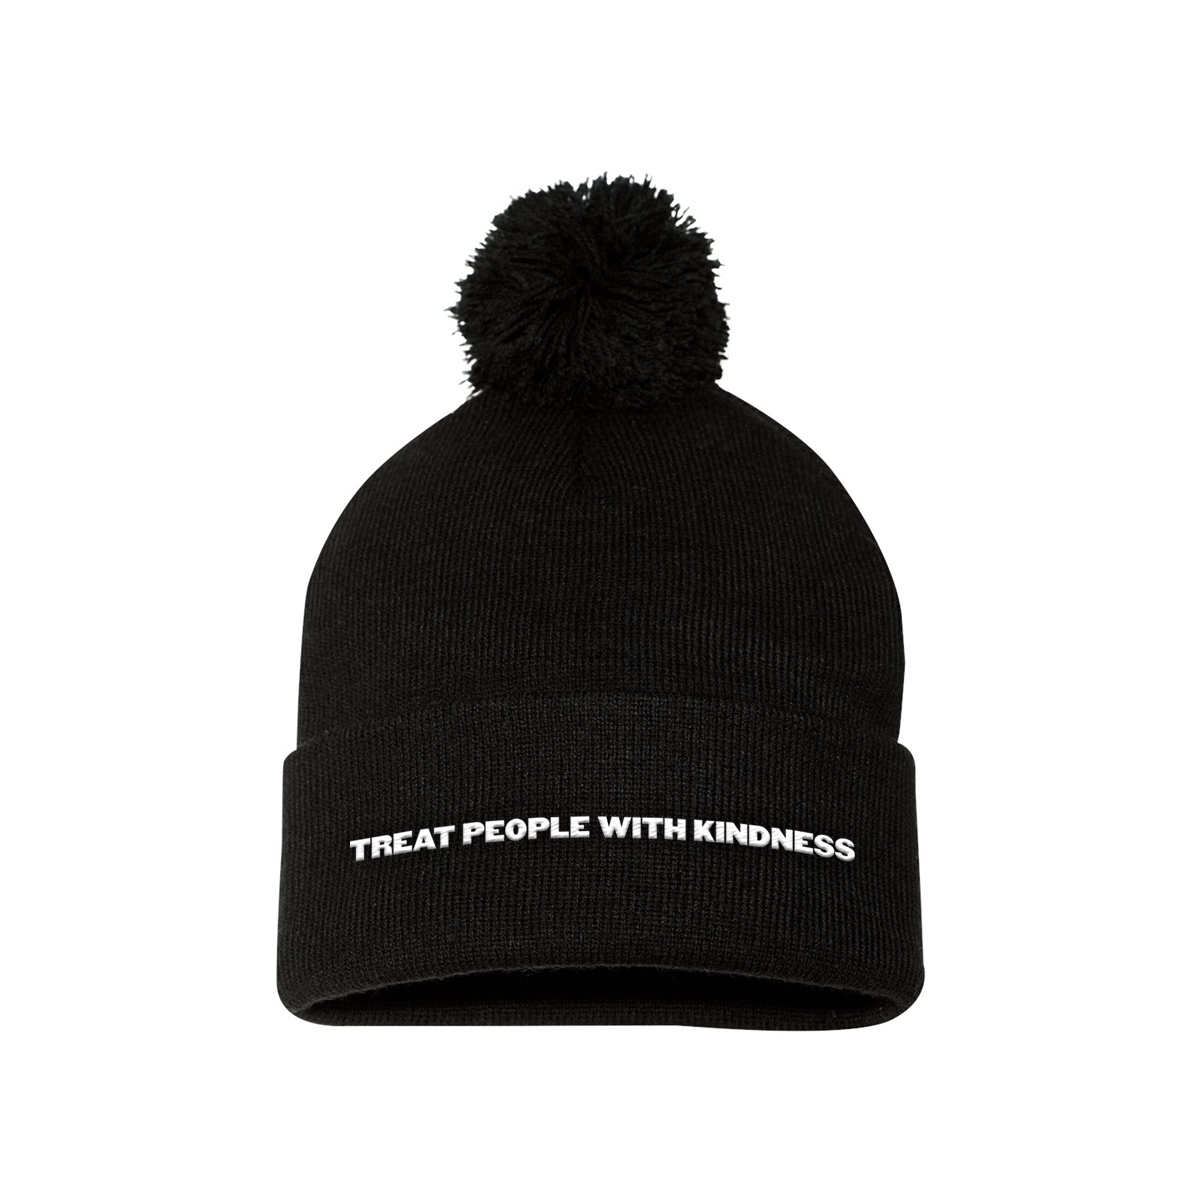 Treat People With Kindness Pom Beanie + Digital Download - Harry Styles EU